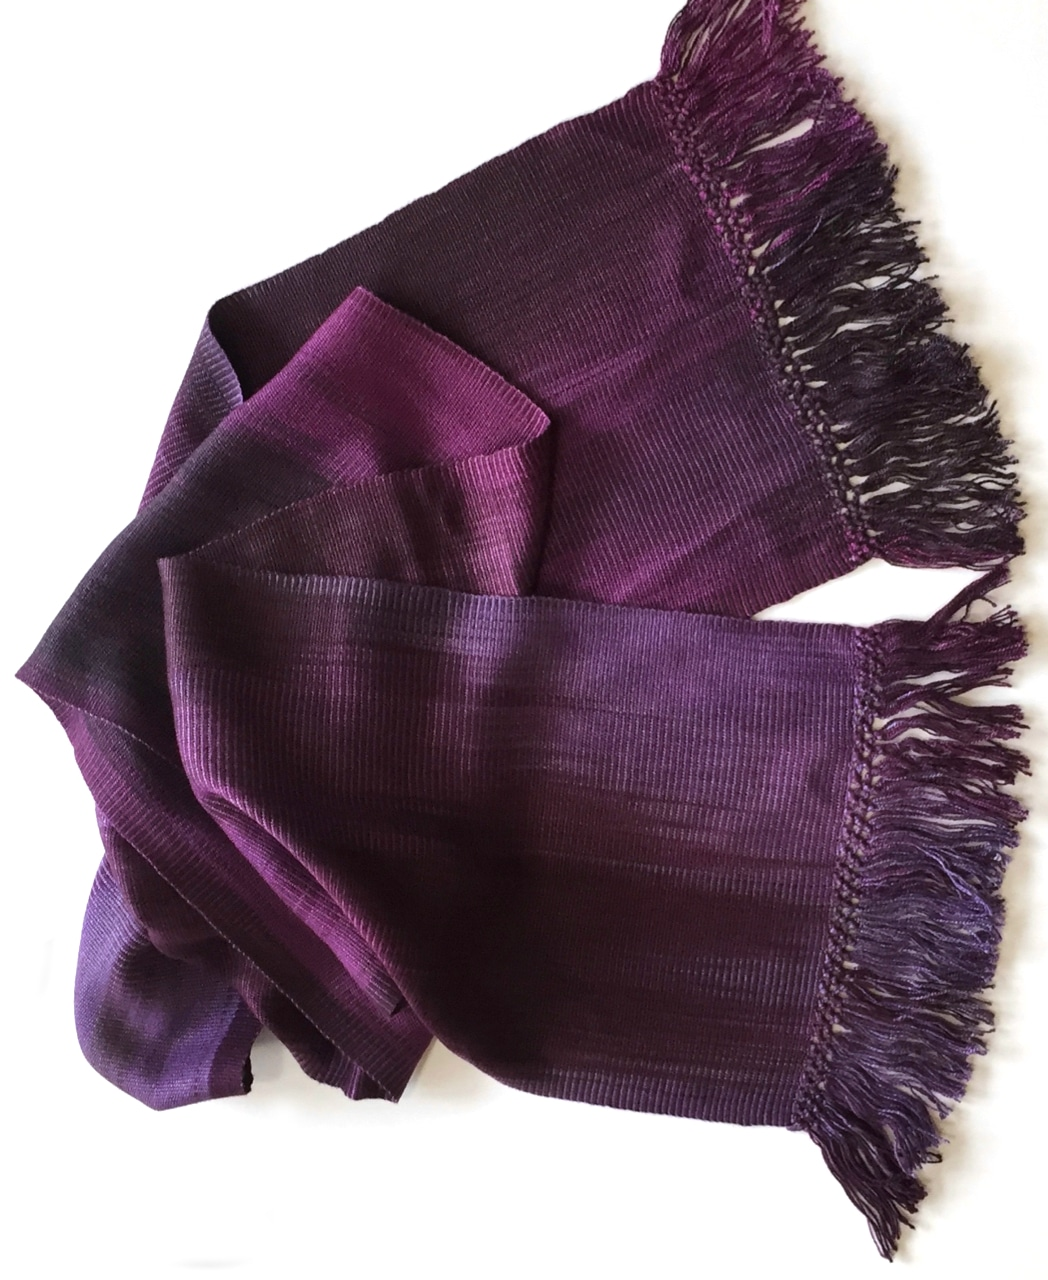 Purples, Lilac, Violet - Lightweight Bamboo Handwoven Scarf 8 x 68